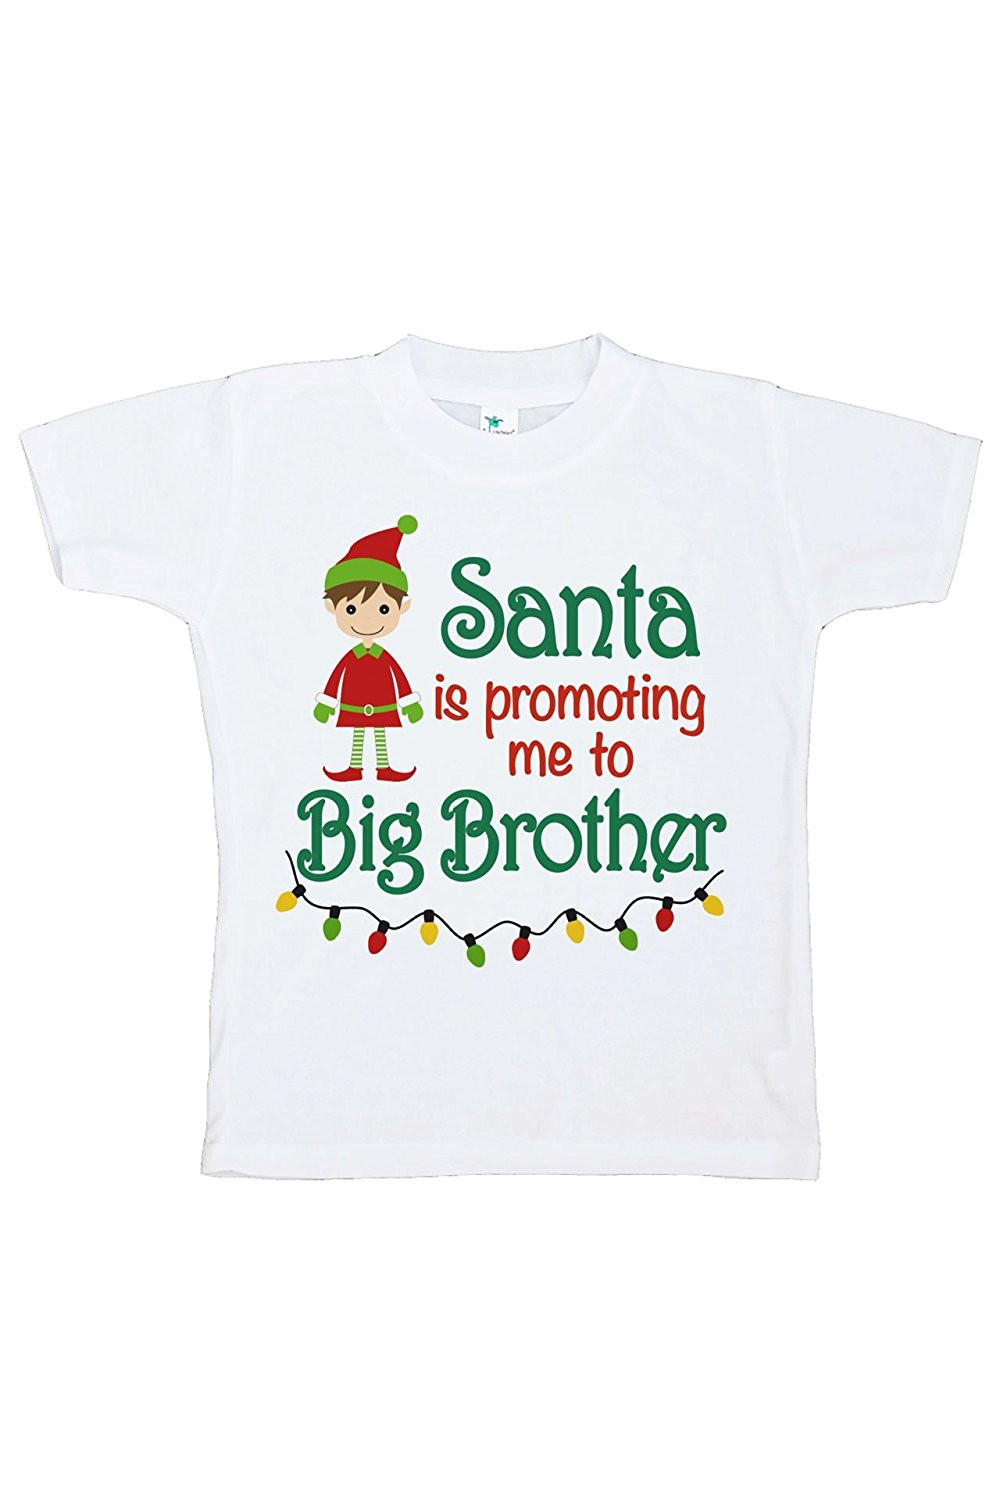 Custom Party Shop Youth Big Brother Christmas T-shirt - Small (6-8) T-shirt